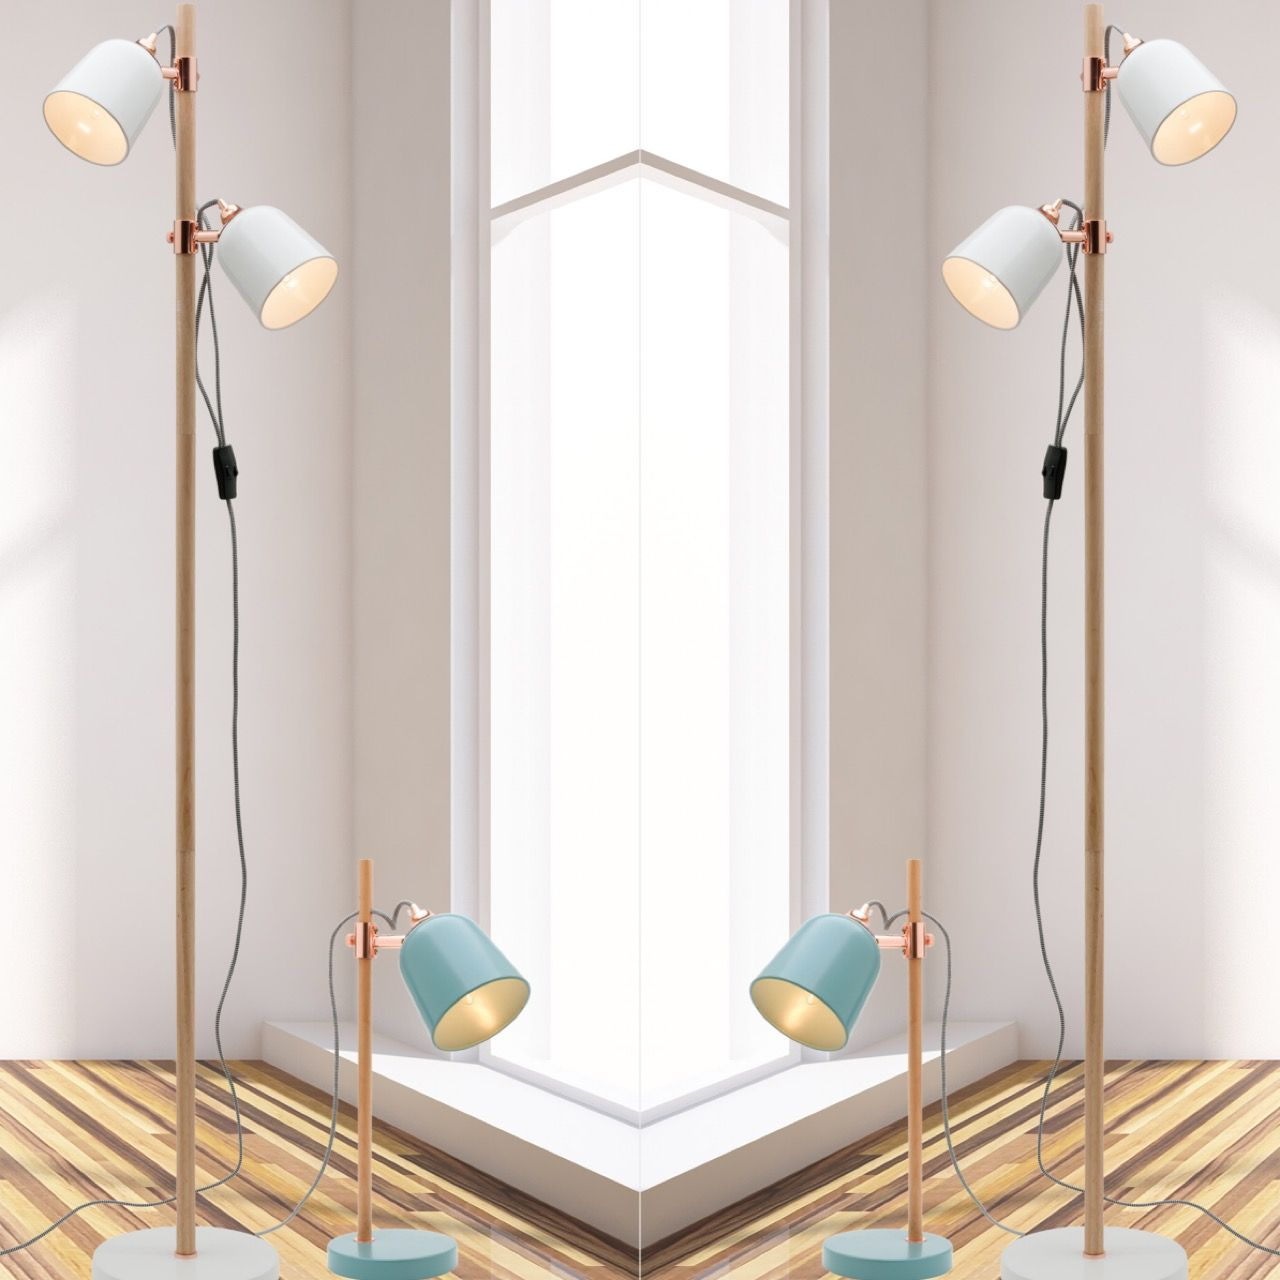 Cuba Table Lamp And Cuba Floor Lamp Available In Duck Egg And White At Www.